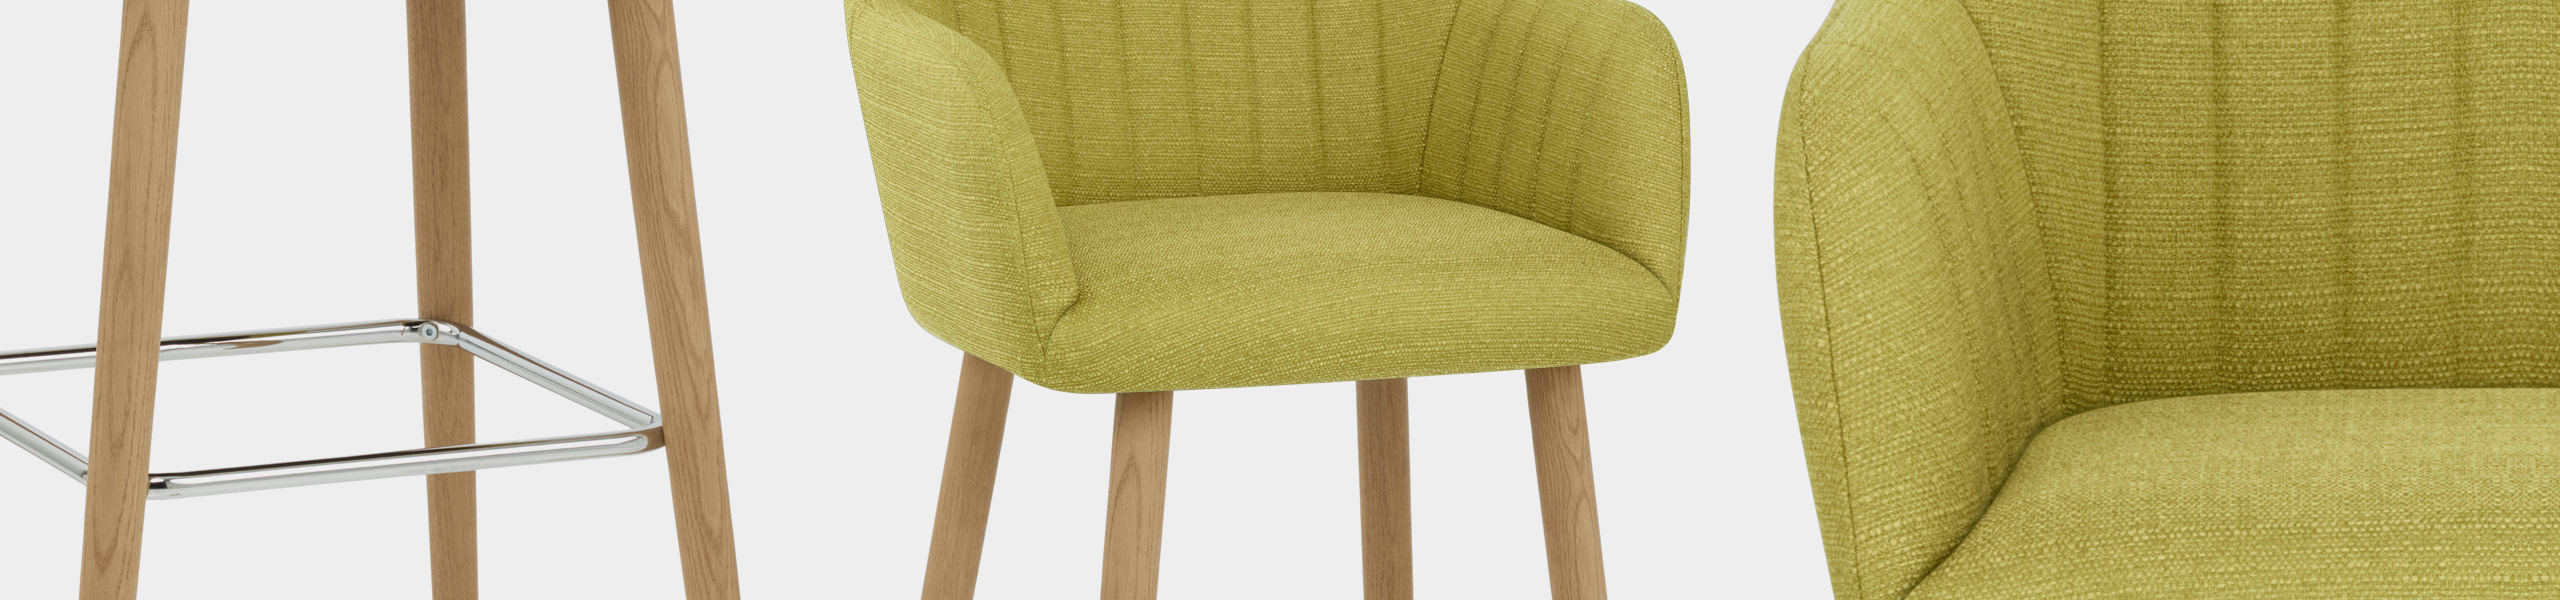 Rio Wooden Stool Green Fabric Video Banner